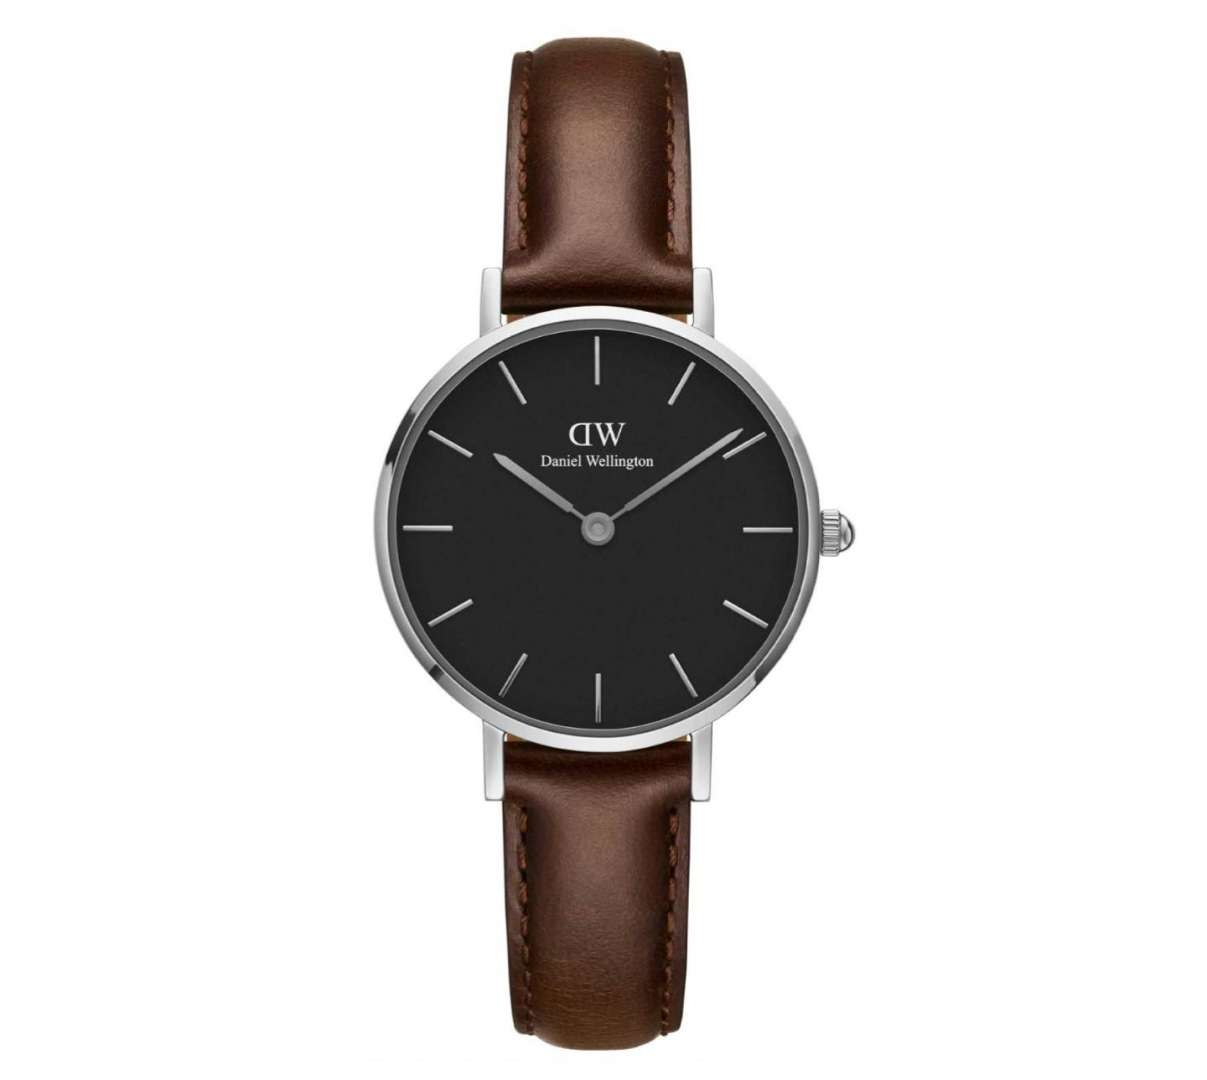 שעון יד אנלוגי daniel wellington DW00100233 דניאל וולינגטון